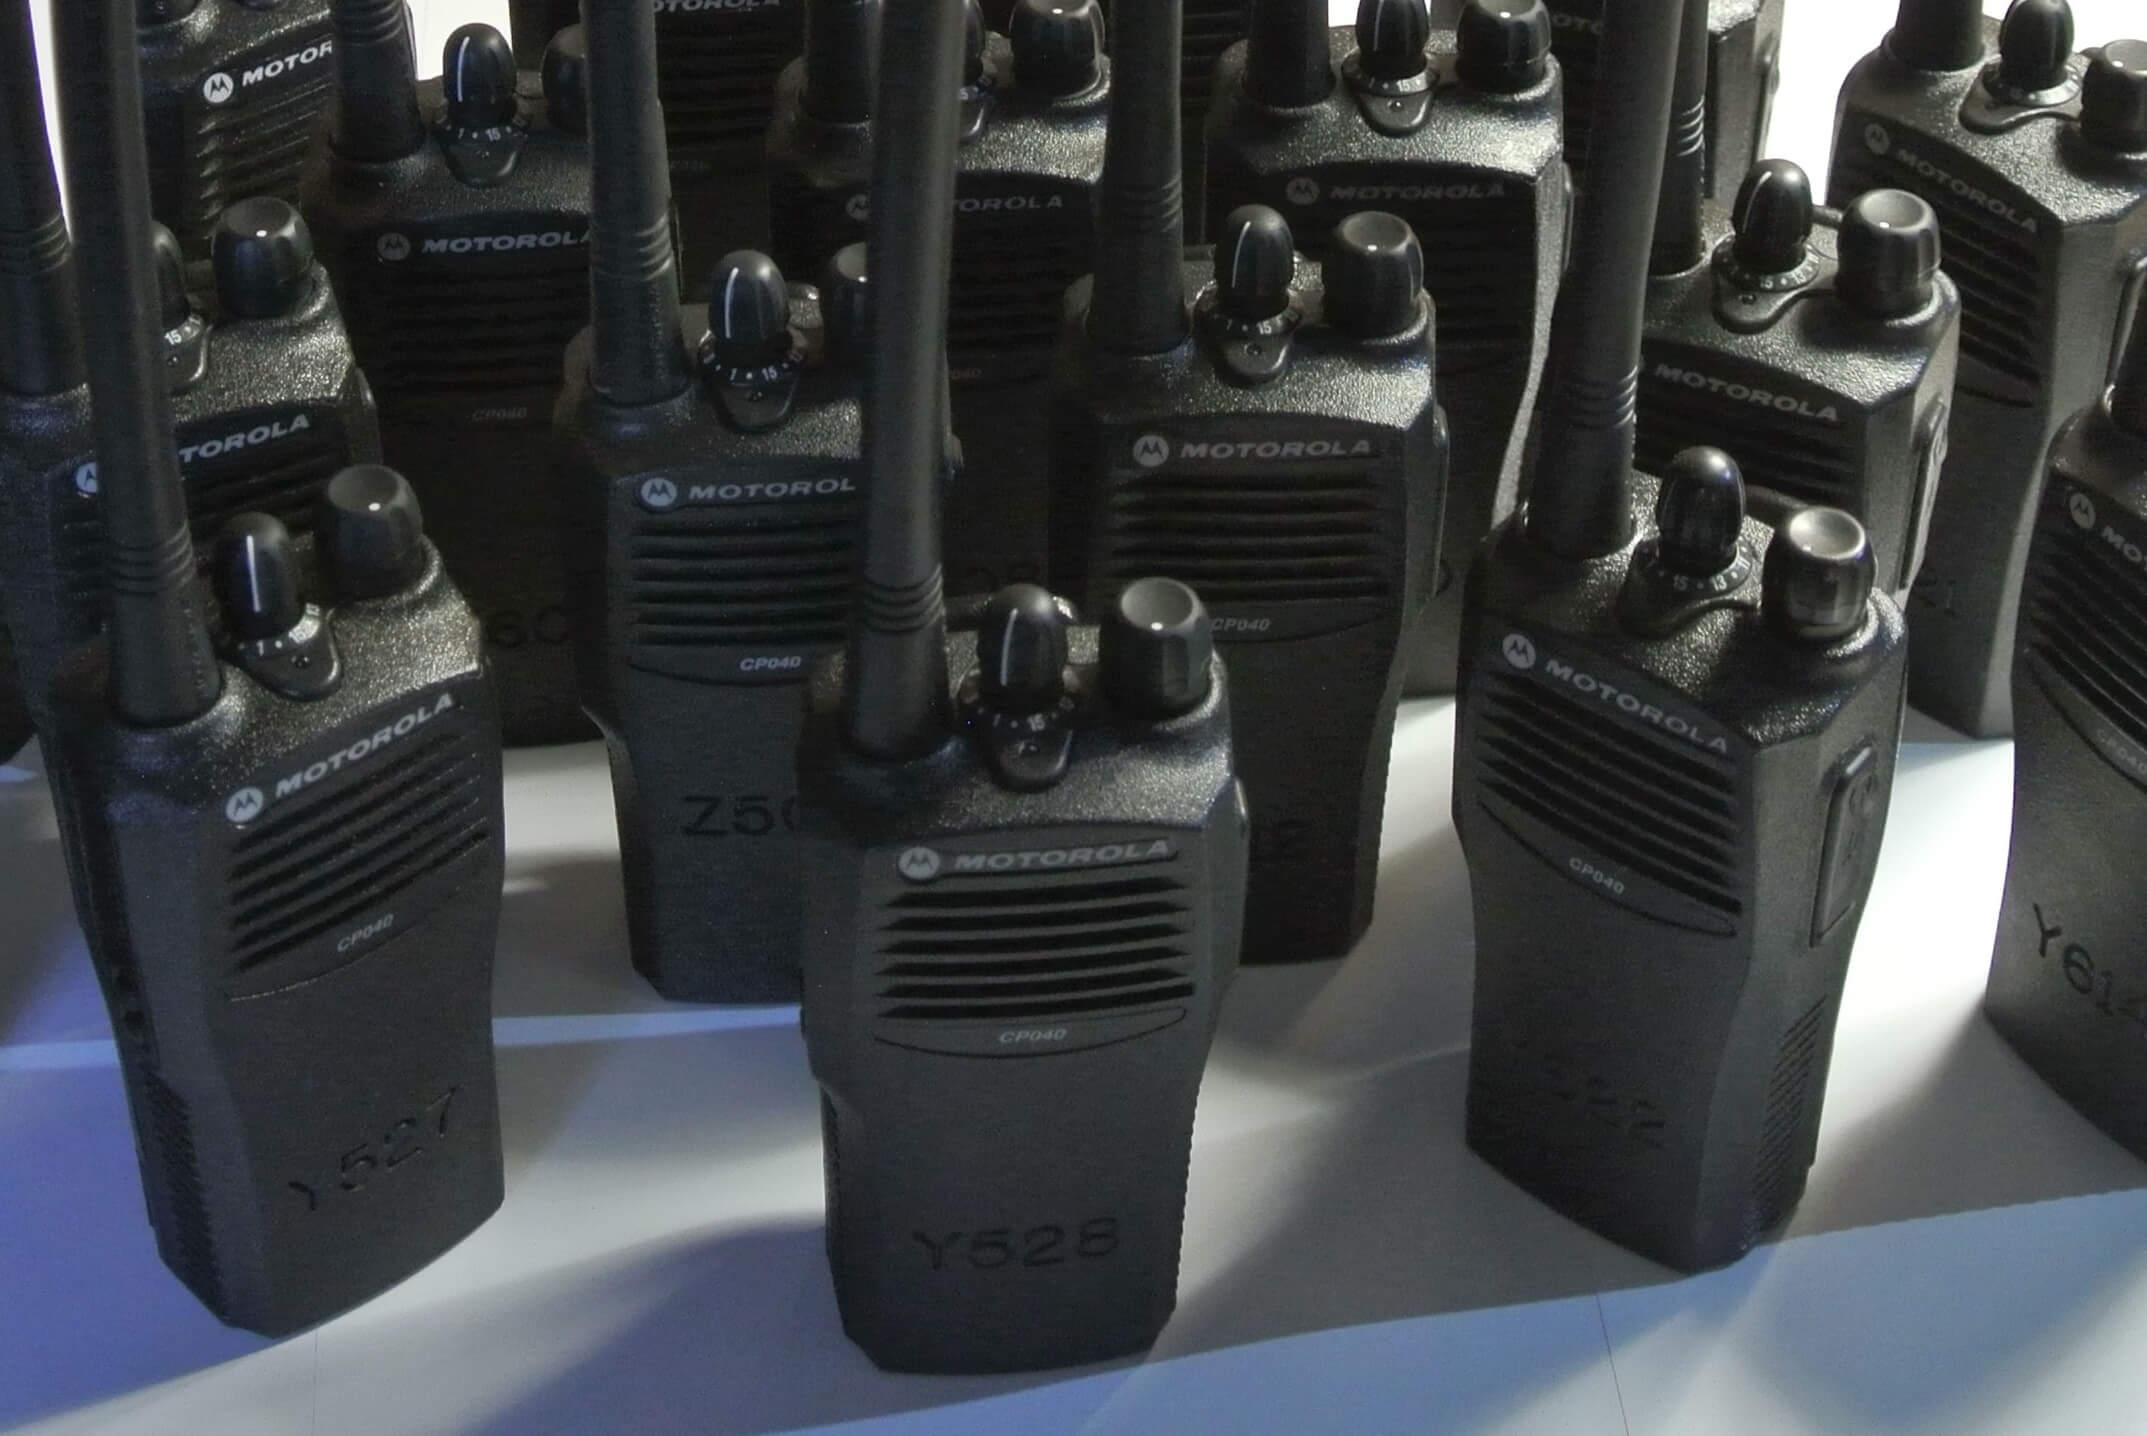 Low Priced Walkie Talkie Hire, Business CP040 Hire Radio Rentals, Rent Walkie Talkies